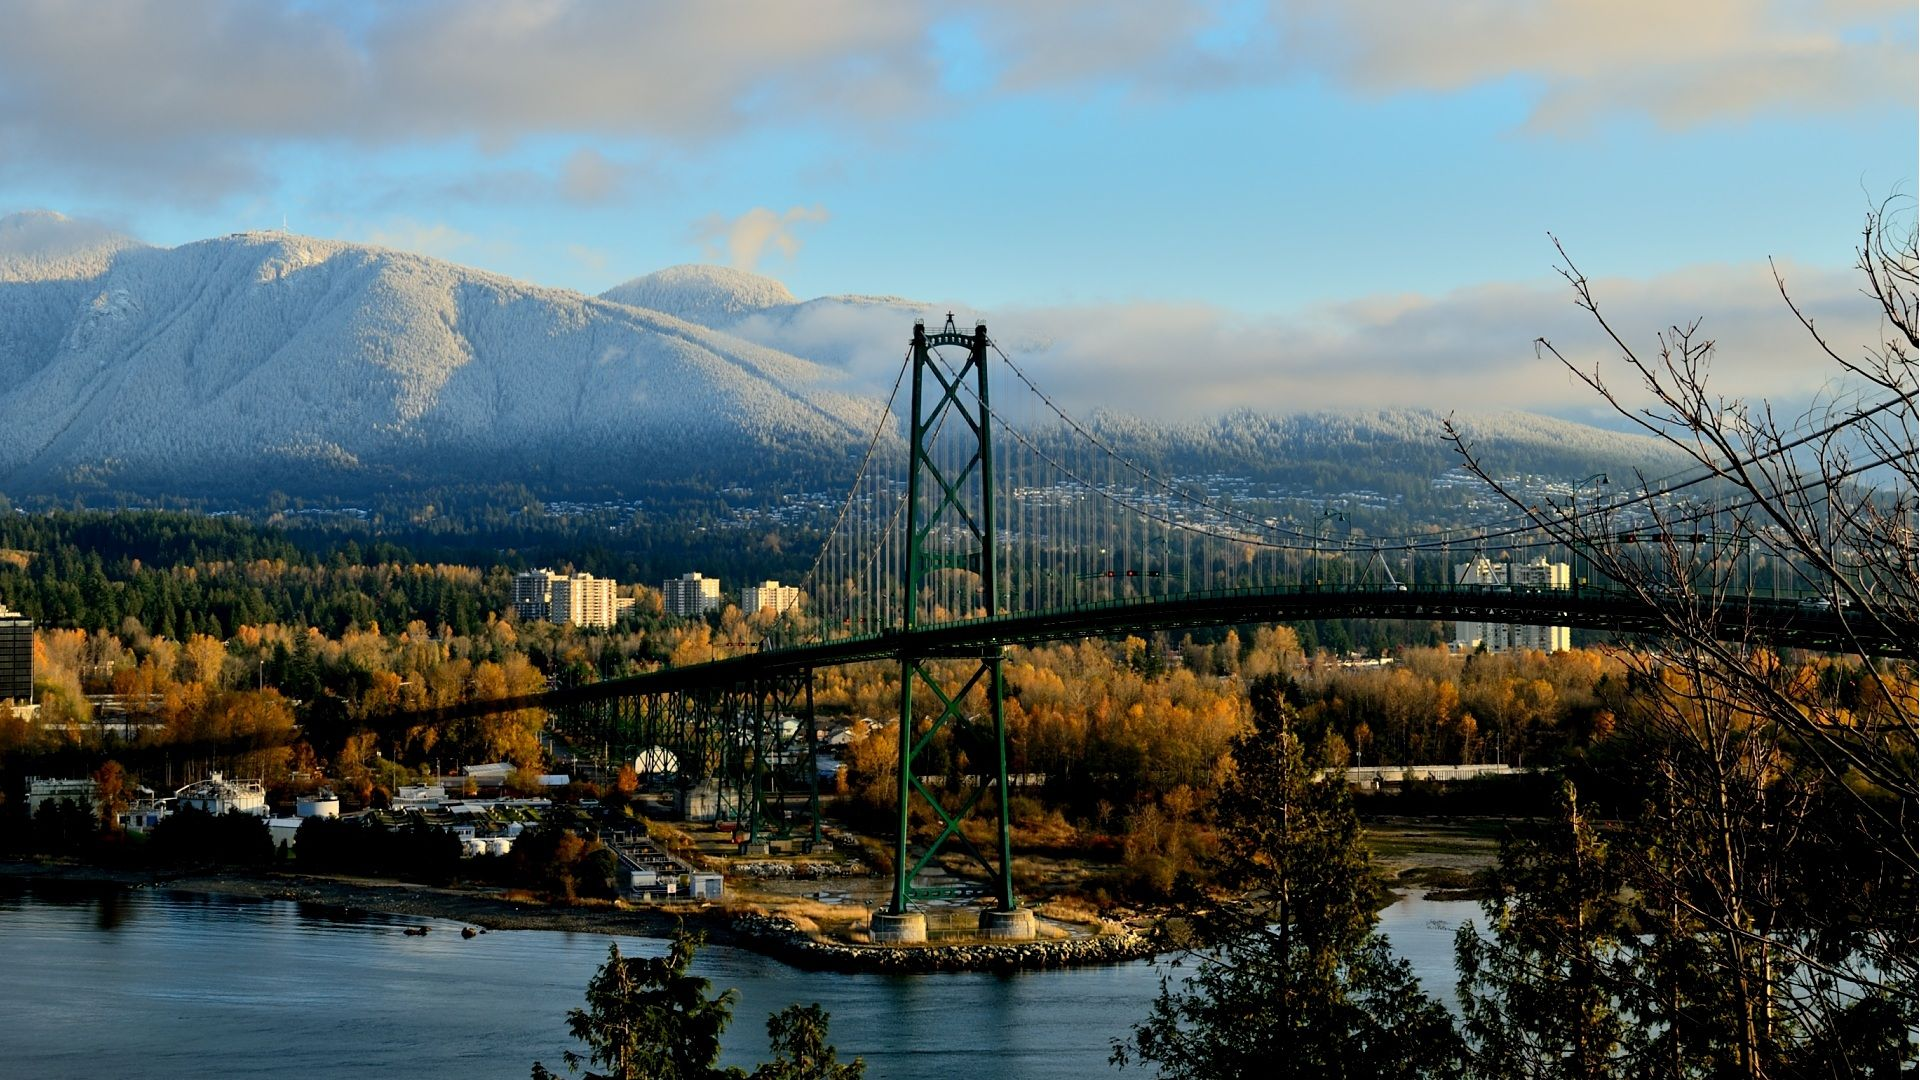 City Northshore With Lions Gate Bridge desktop wallpaper nr 6 1920x1080